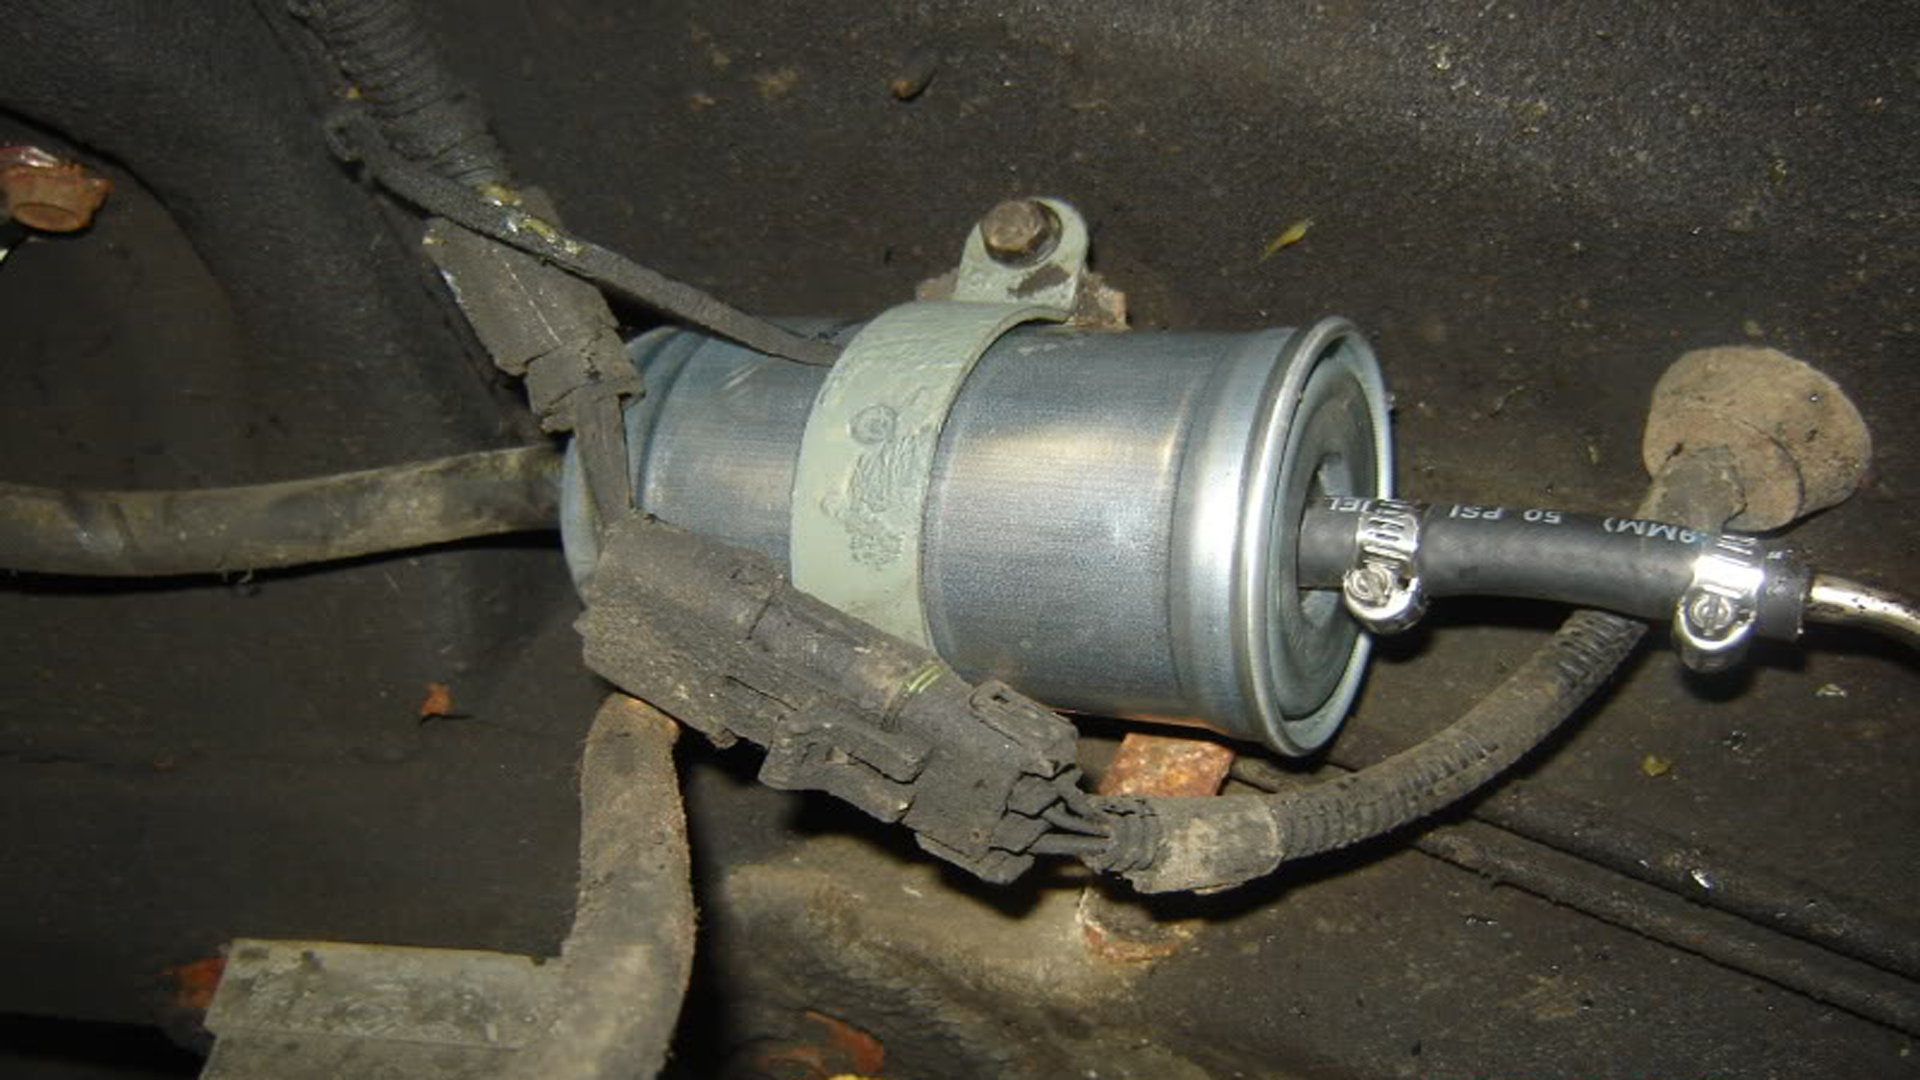 Jeep Grand Cherokee ZJ 1993-1998: How to Replace Fuel Filter | CherokeeforumJeep Cherokee Forum